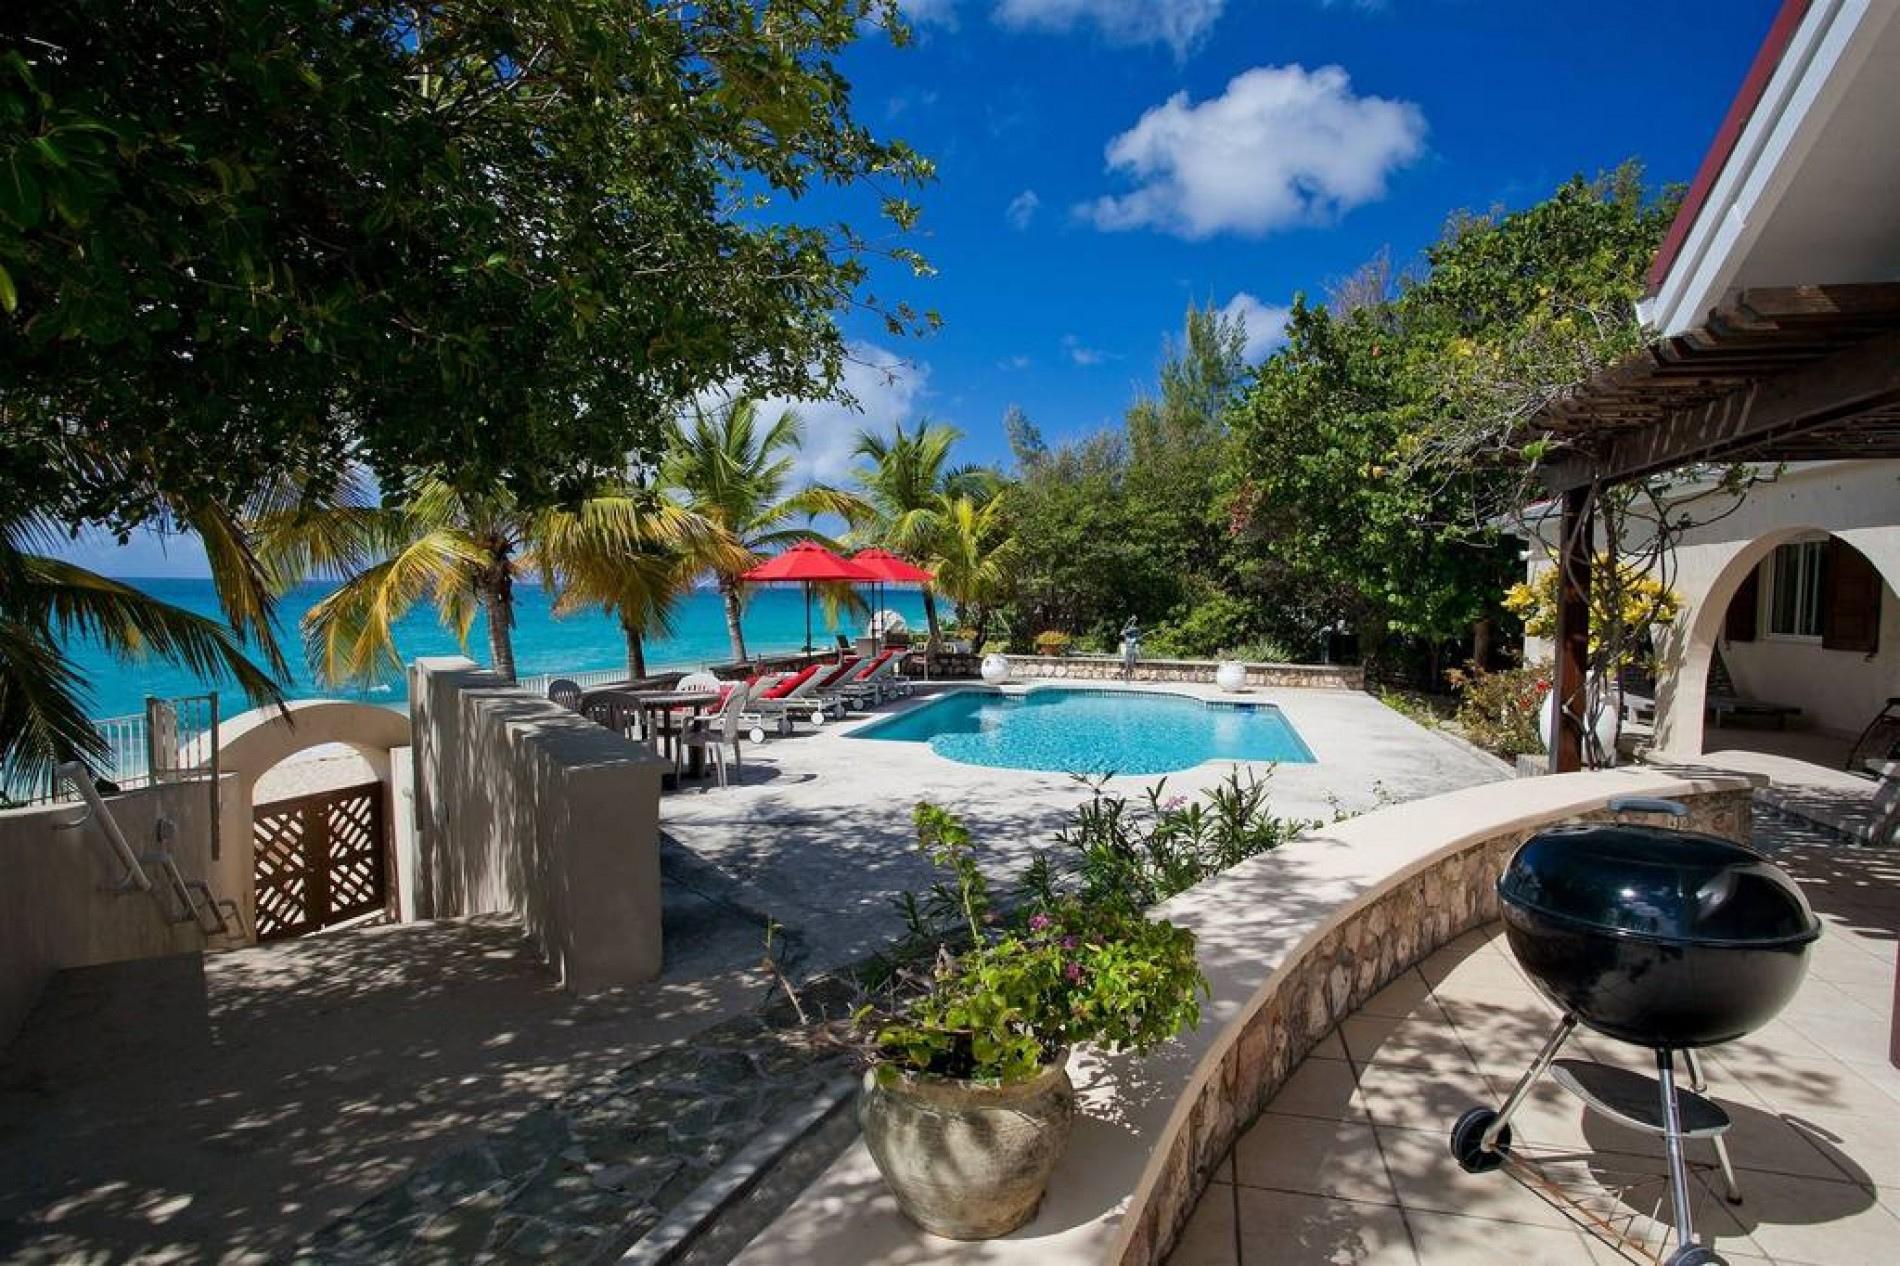 Caribbean St Martin Baie Longue Rated 5 Based On 2 Customer Reviews